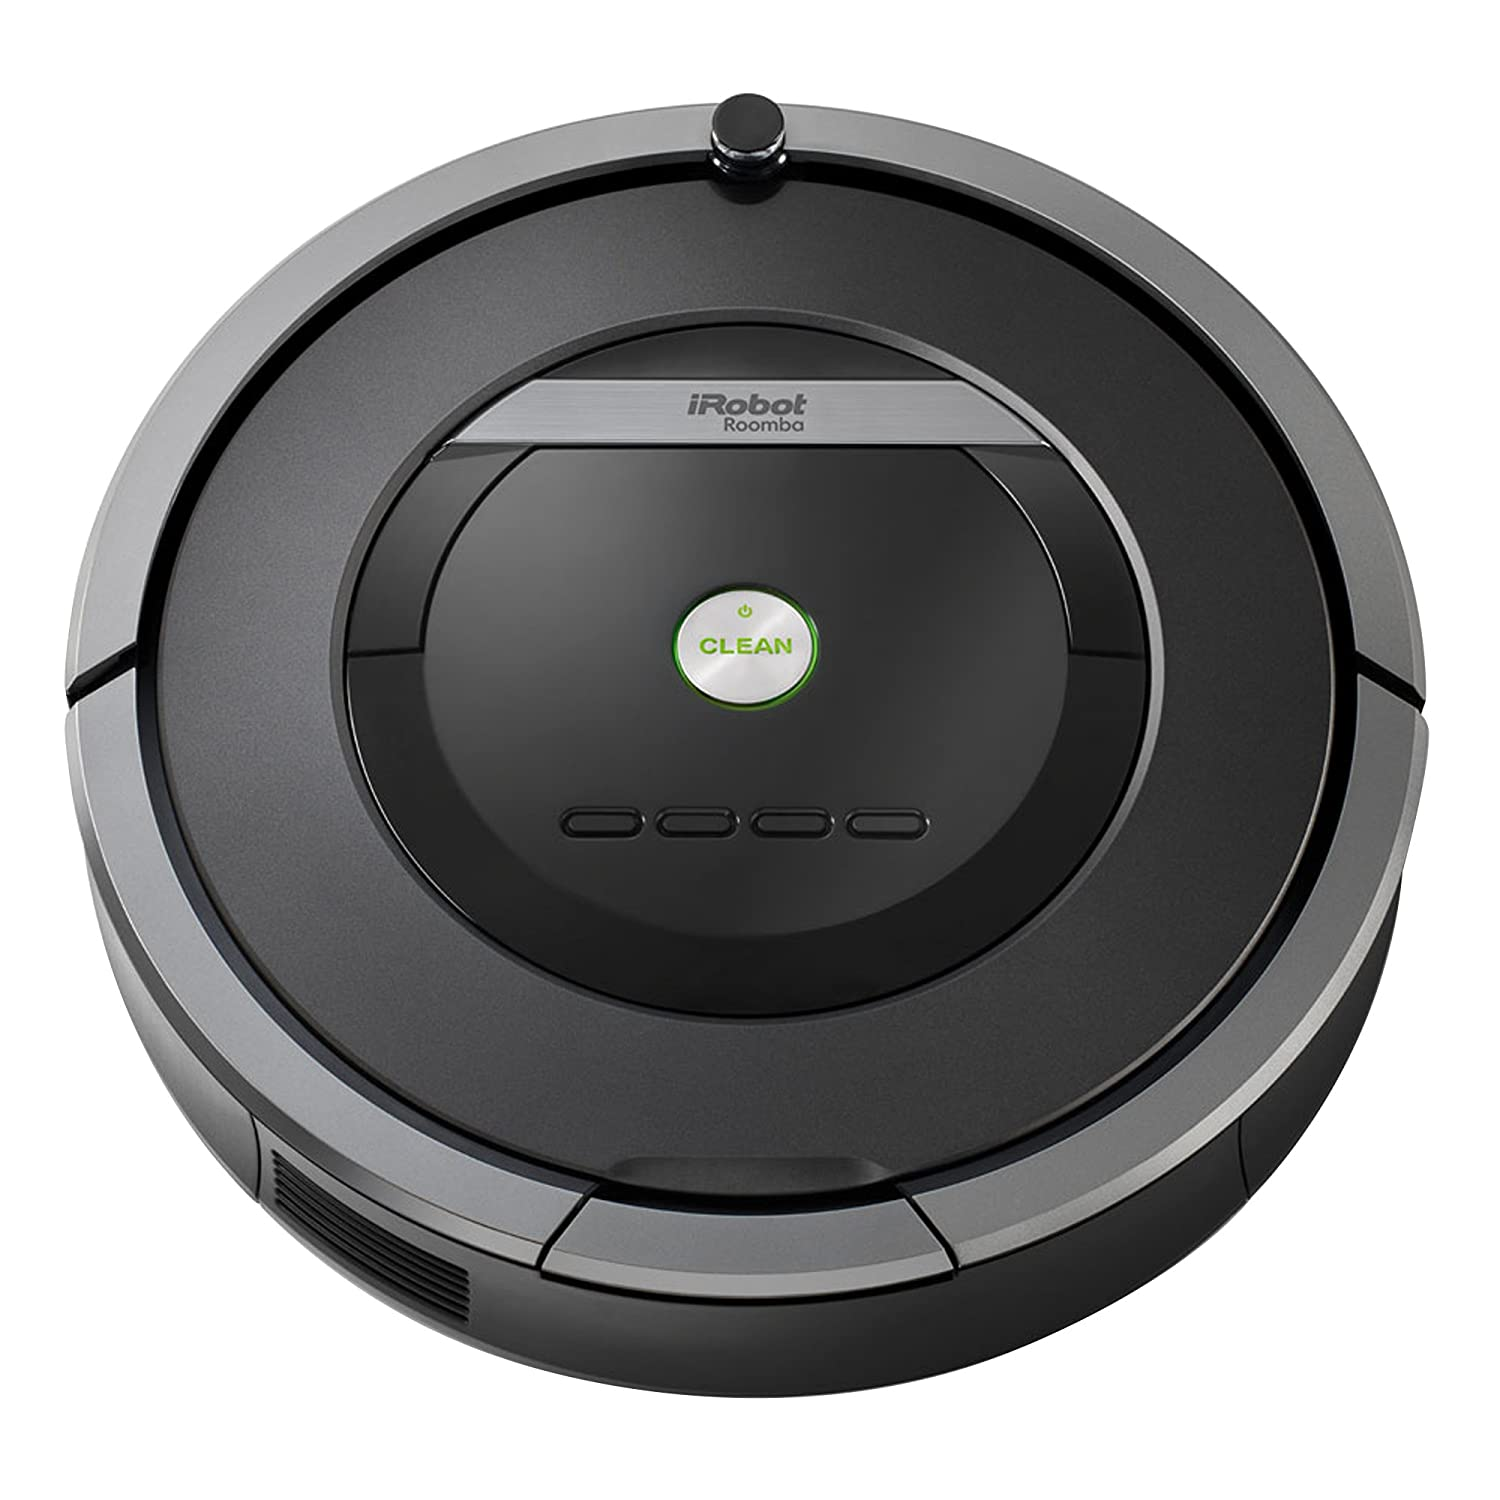 Roomba 870 review